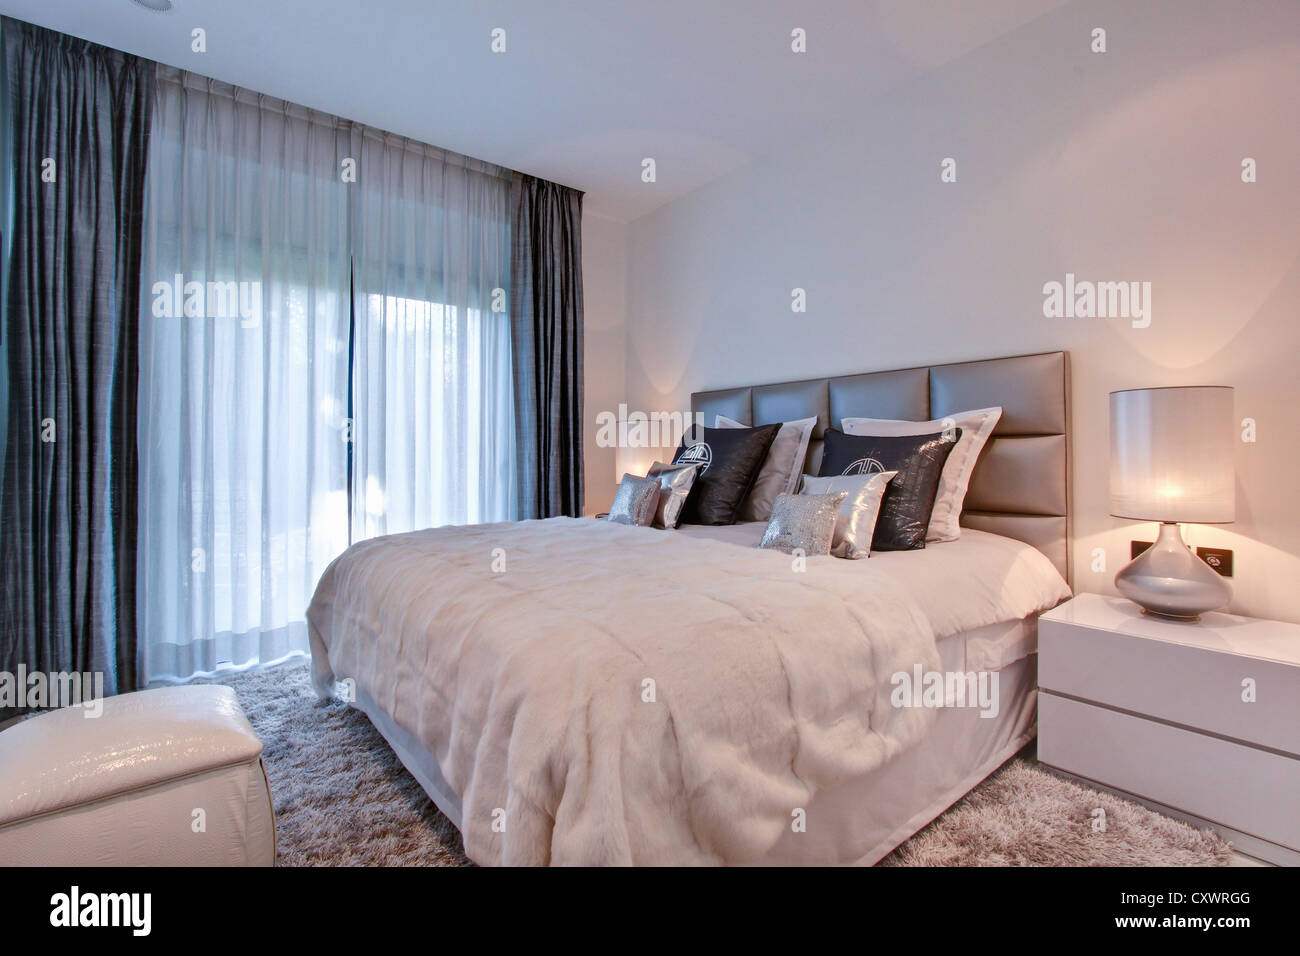 Sheer Curtains In Bedroom Stock Photo Alamy